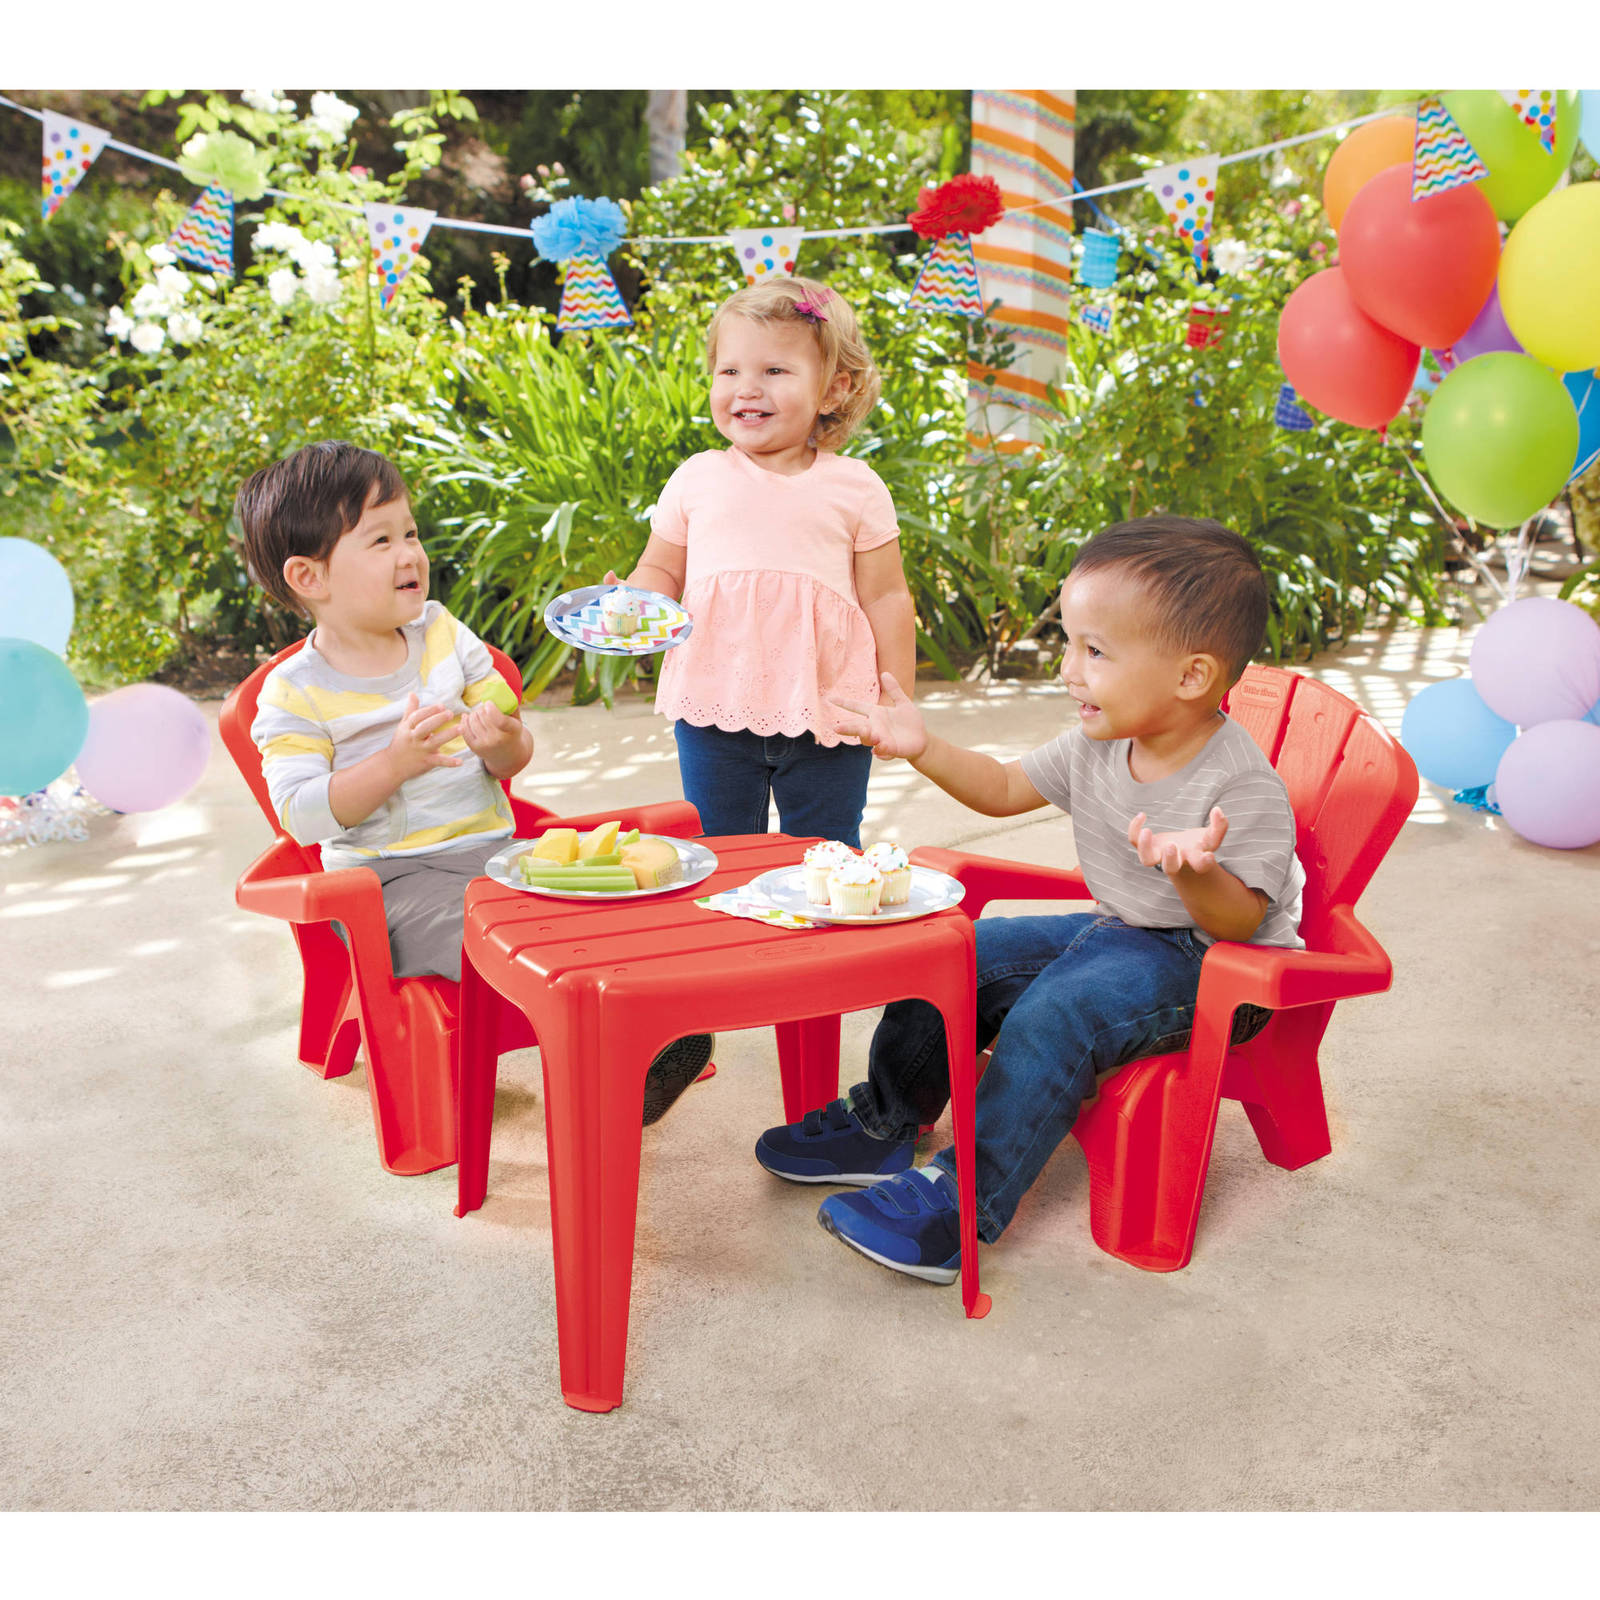 kids play set adirondack chair table baby child patio yard furniture plastic red play tables. Black Bedroom Furniture Sets. Home Design Ideas